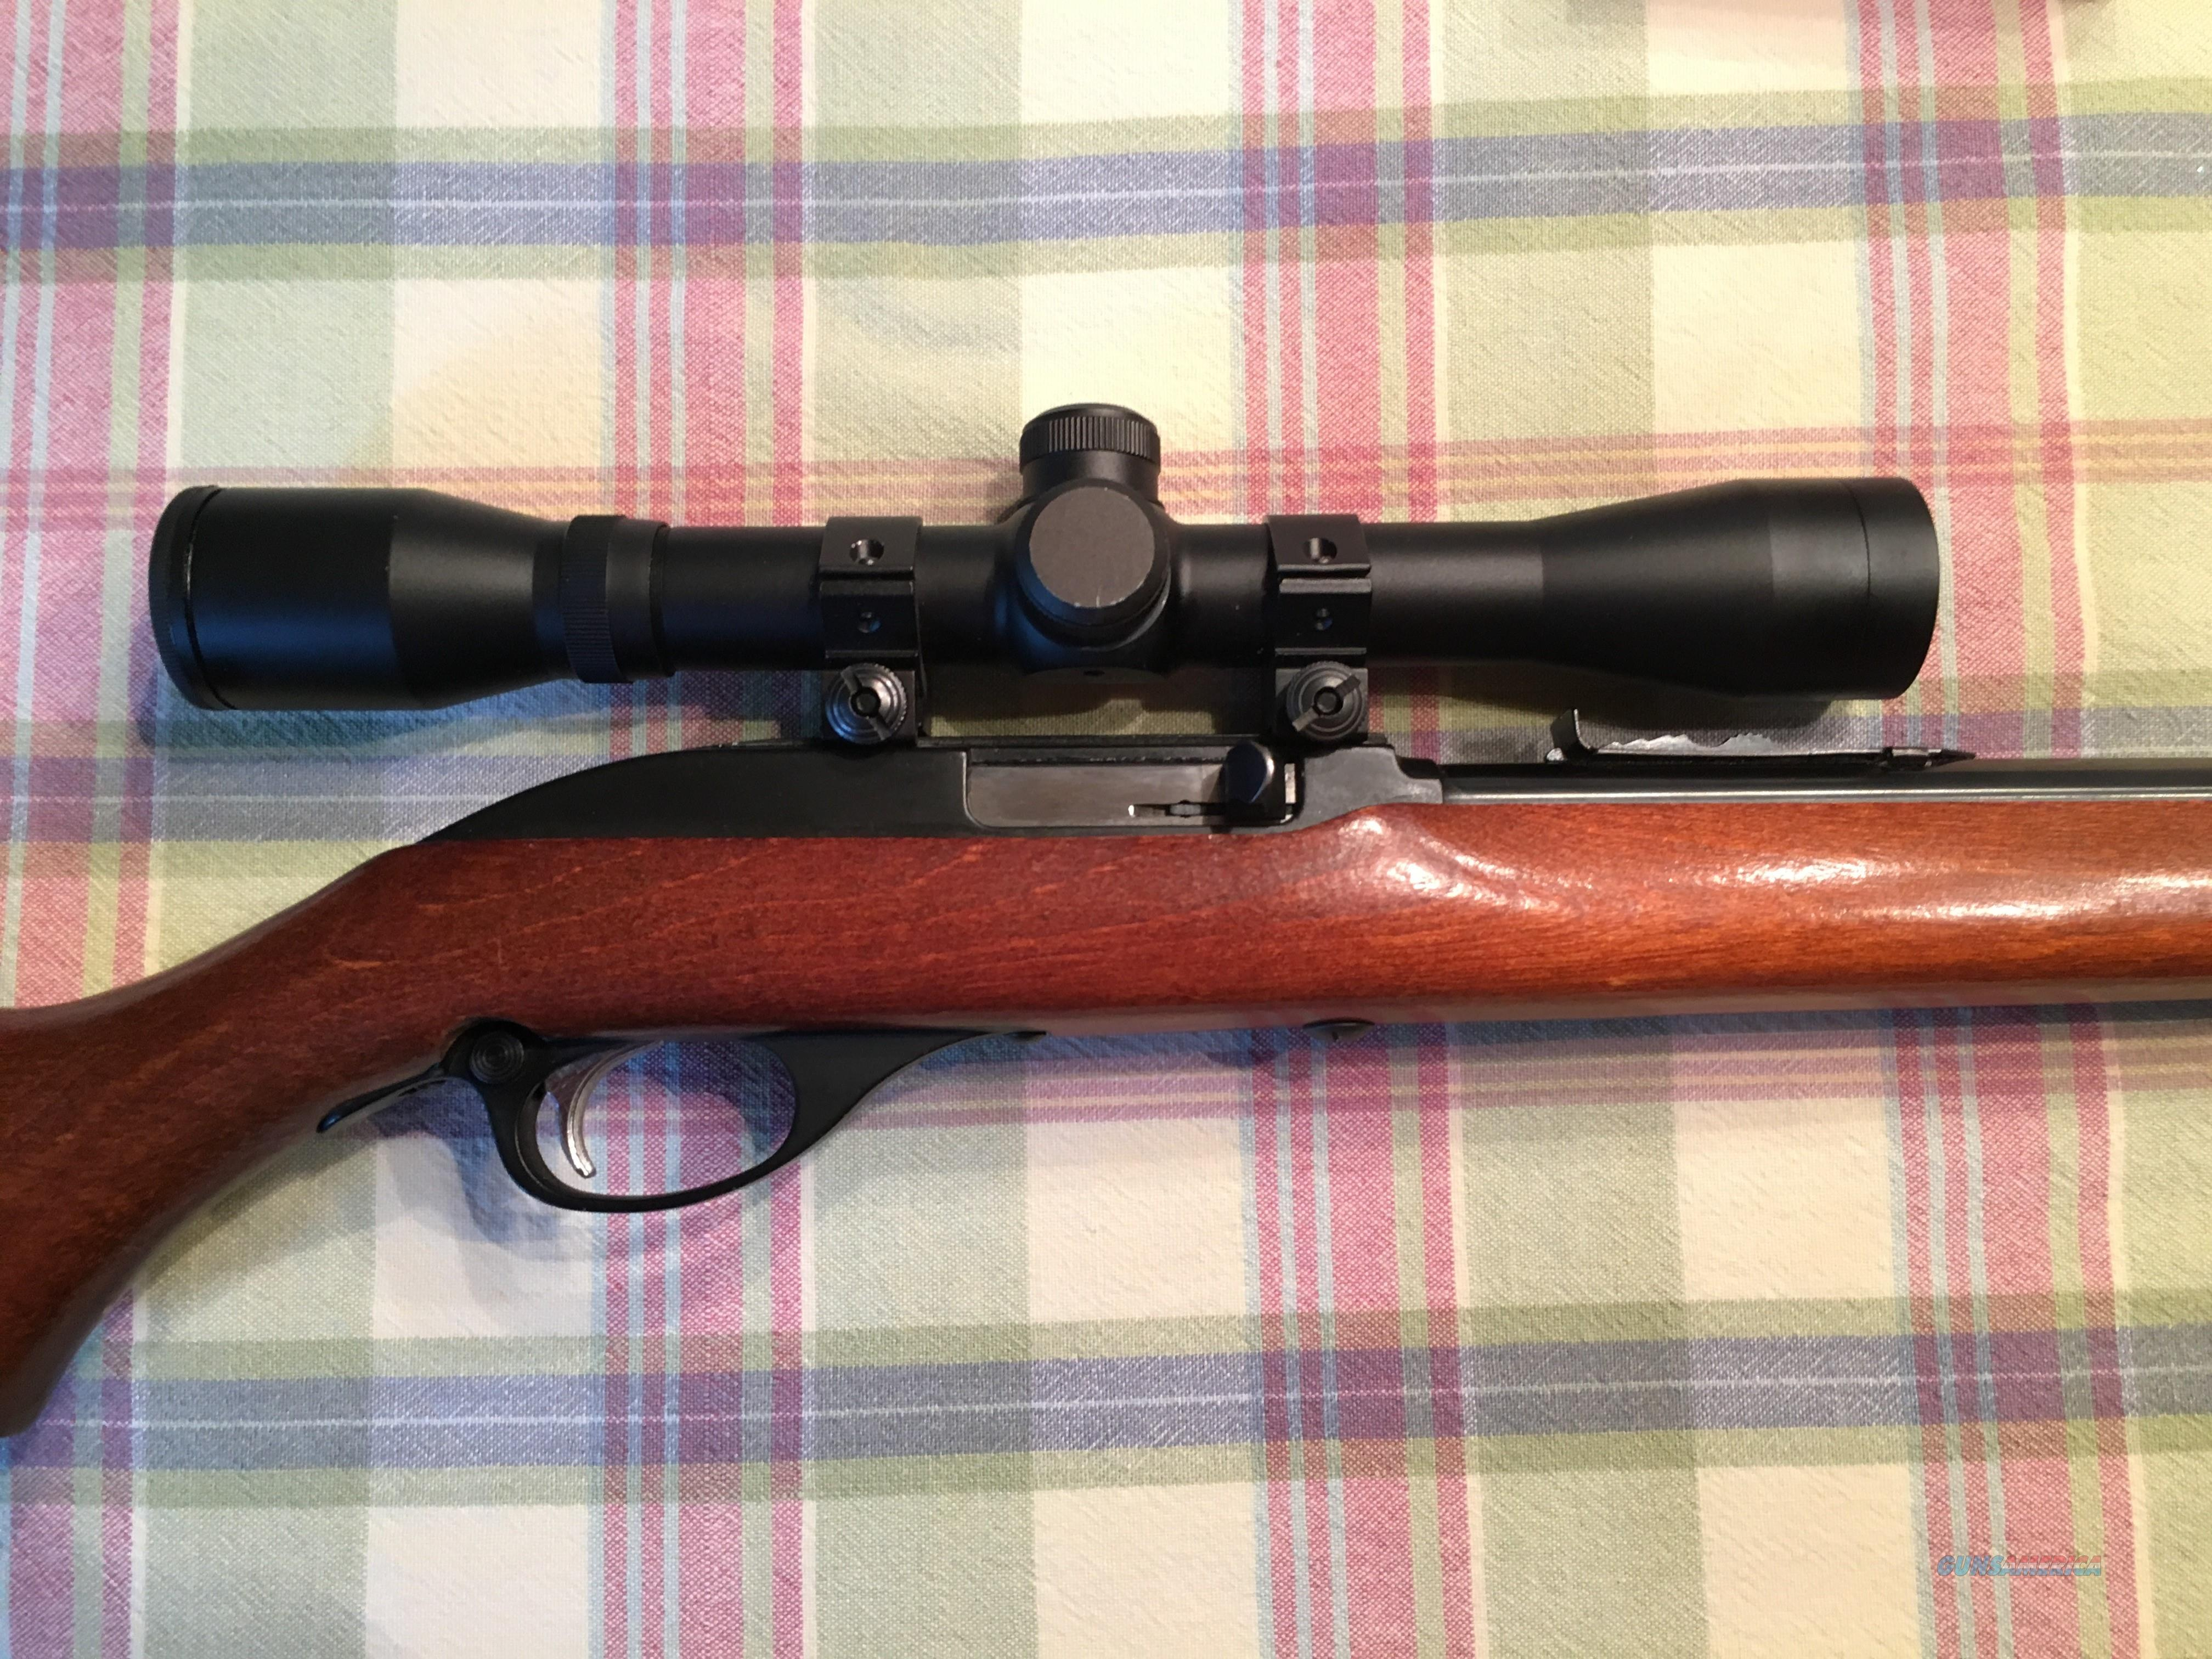 MARLIN/GLENFIELD MODEL 60 .22LR SEMI-AUTO RIFLE WITH BARSKA 4X SCOPE  Guns > Rifles > Marlin Rifles > Modern > Semi-auto